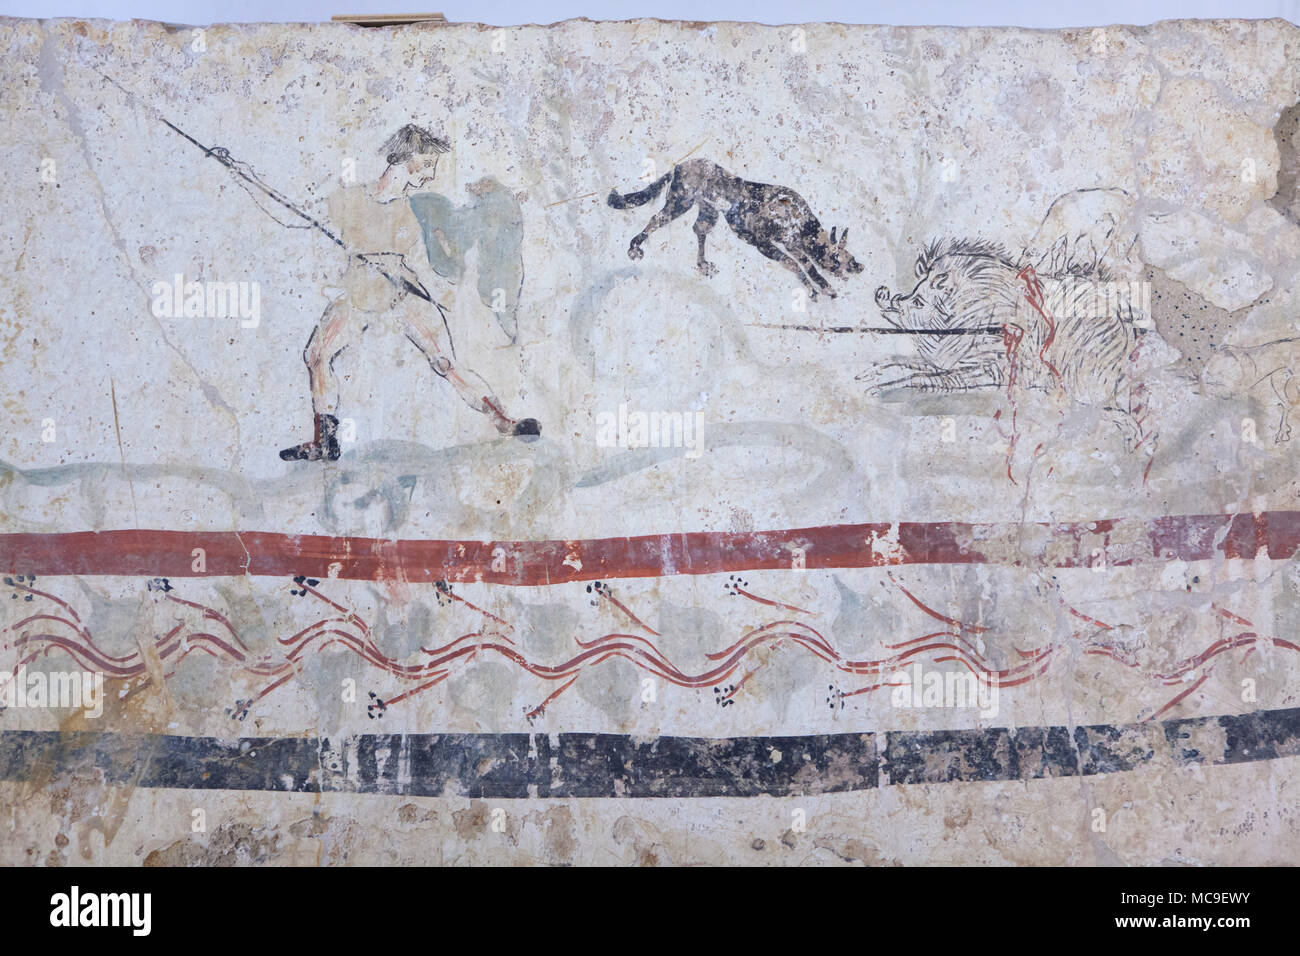 Wild boar hunting depicted in the Lucanian fresco from the 4th century BC on display in the Paestum Archaeological Museum (Museo archeologico di Paestum) in Paestum, Campania, Italy. Stock Photo